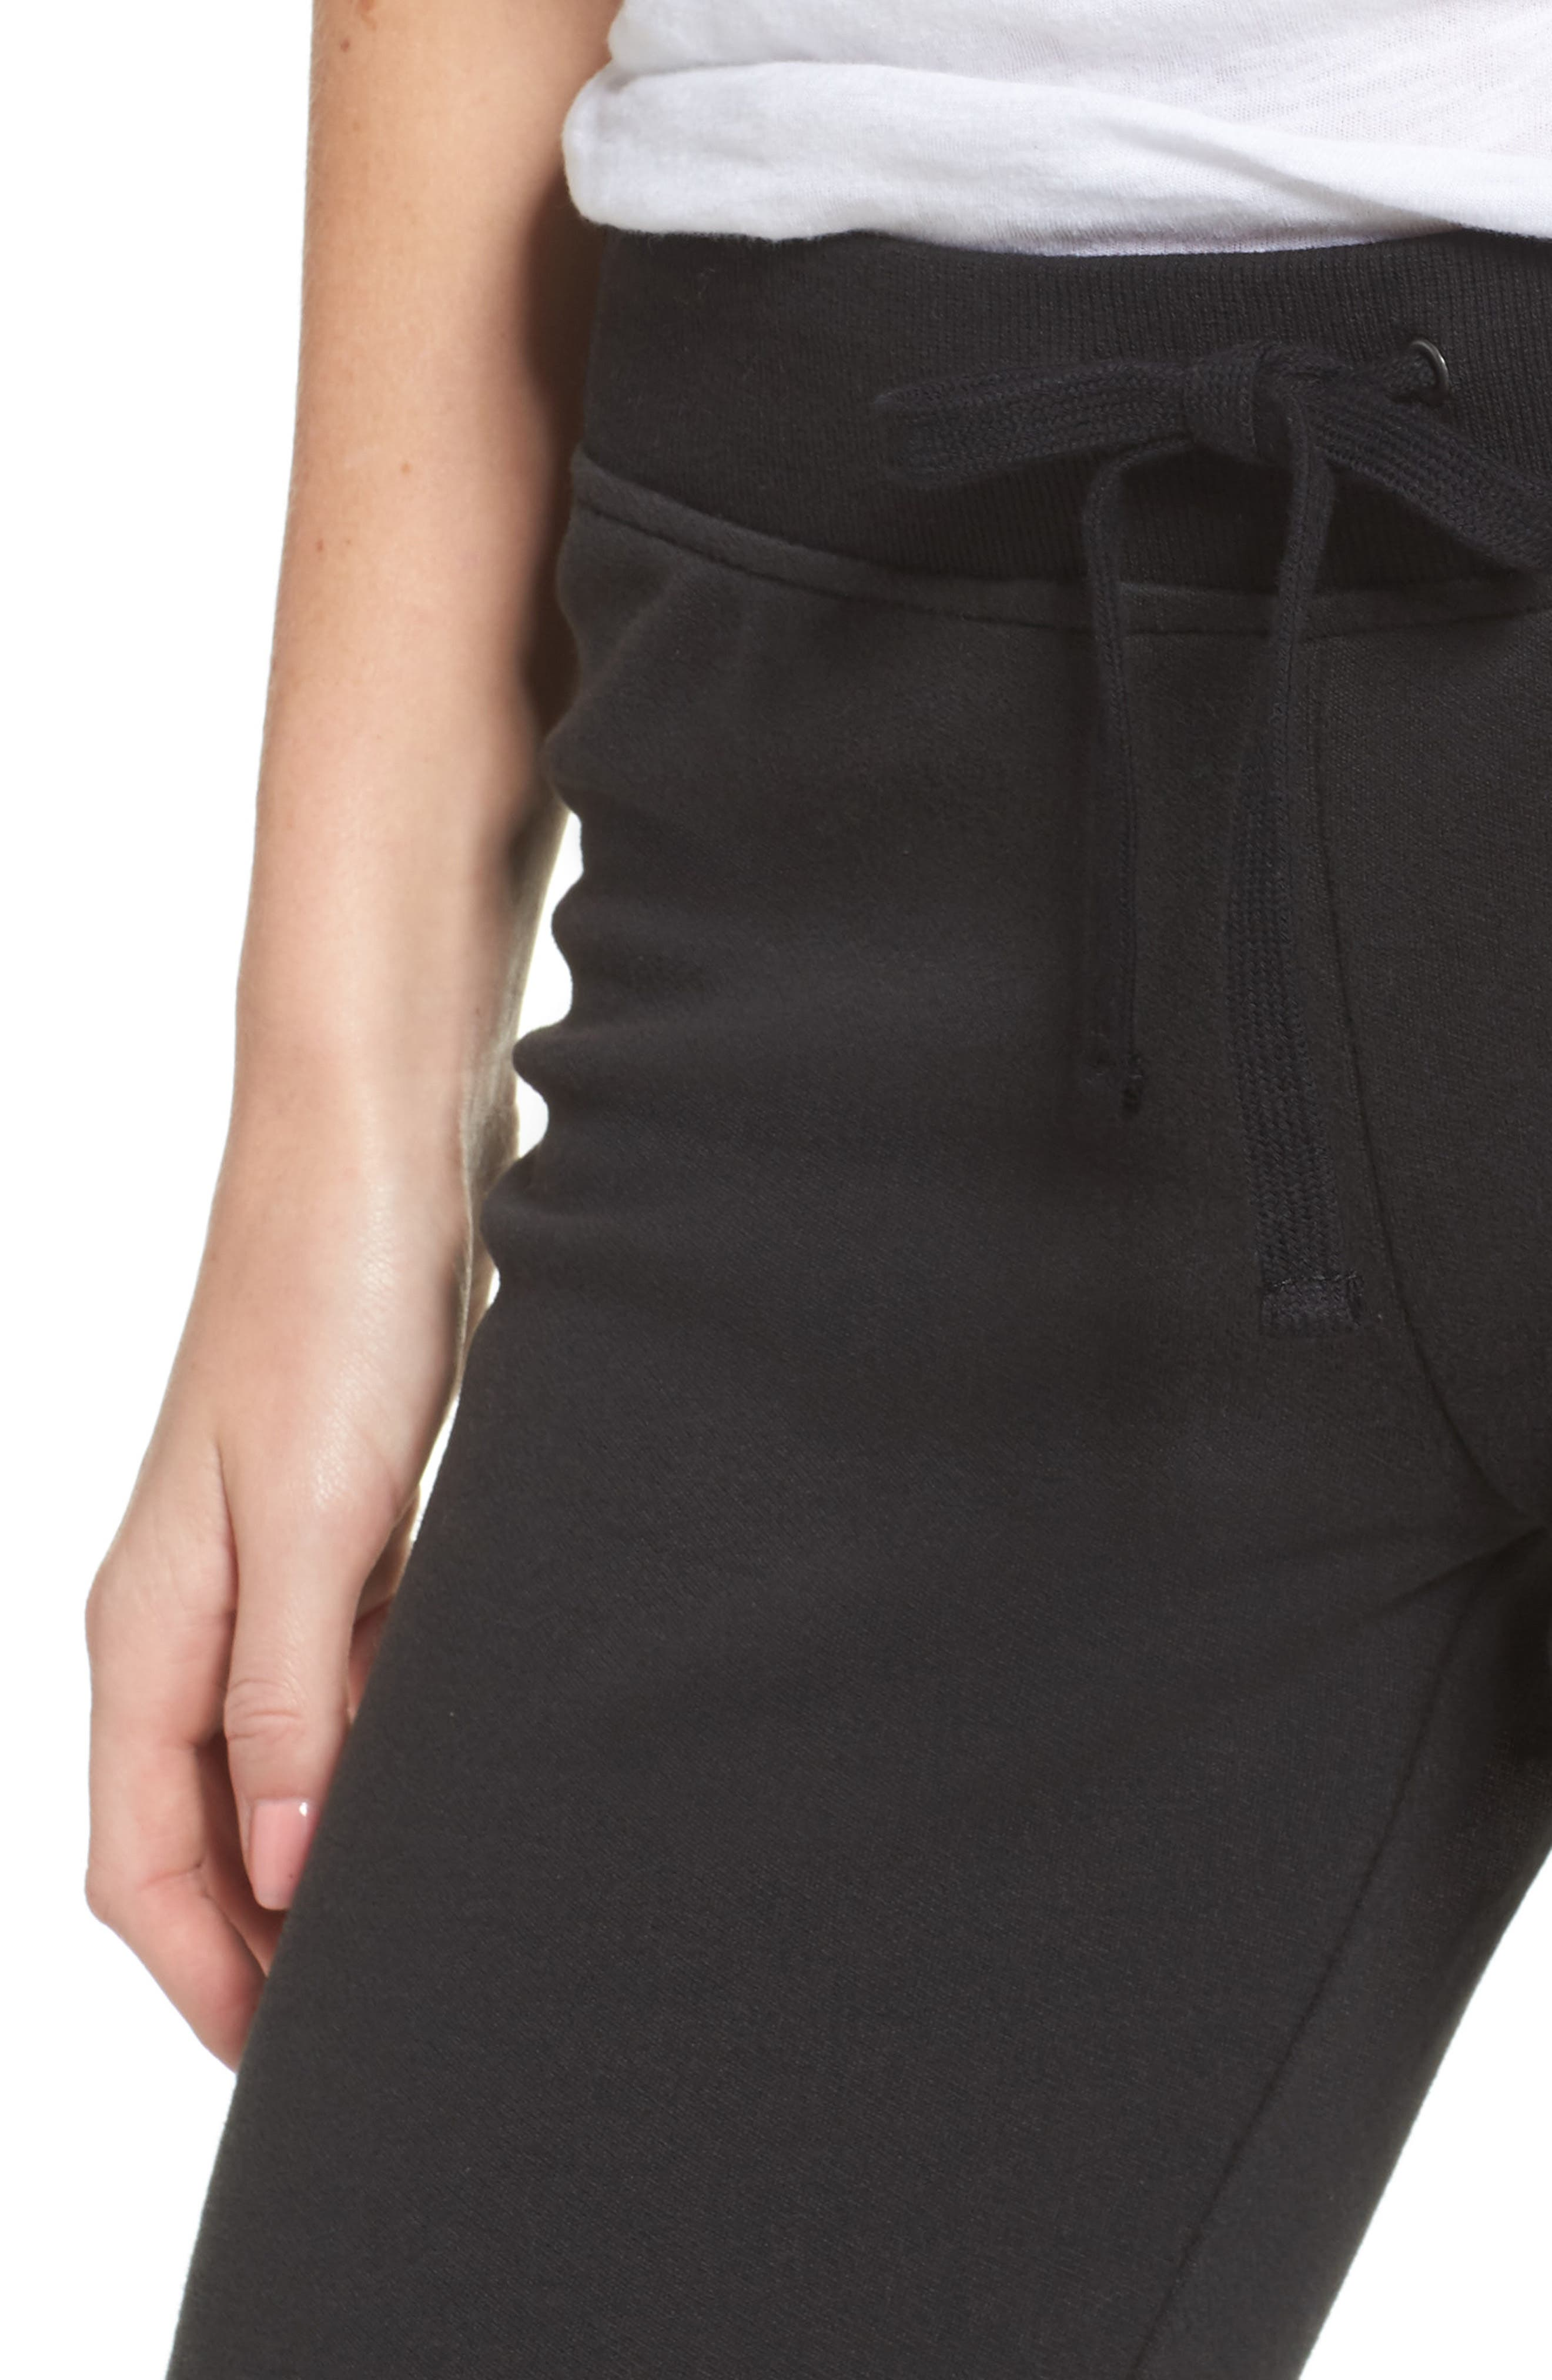 Penny Lounge Pants,                             Alternate thumbnail 4, color,                             BLACK